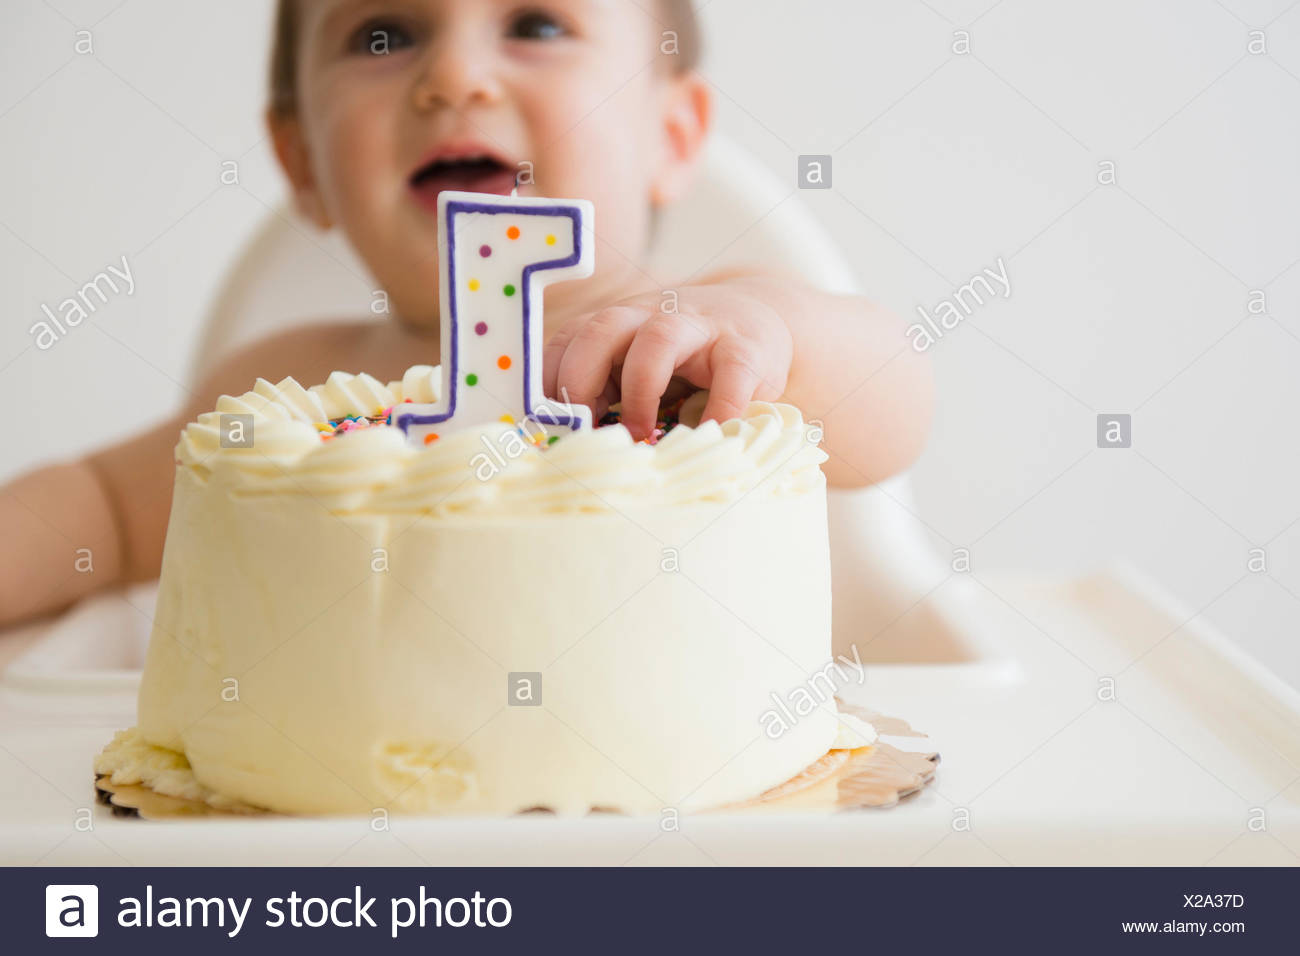 Cake Candle 17 Stock Photos Cake Candle 17 Stock Images Alamy